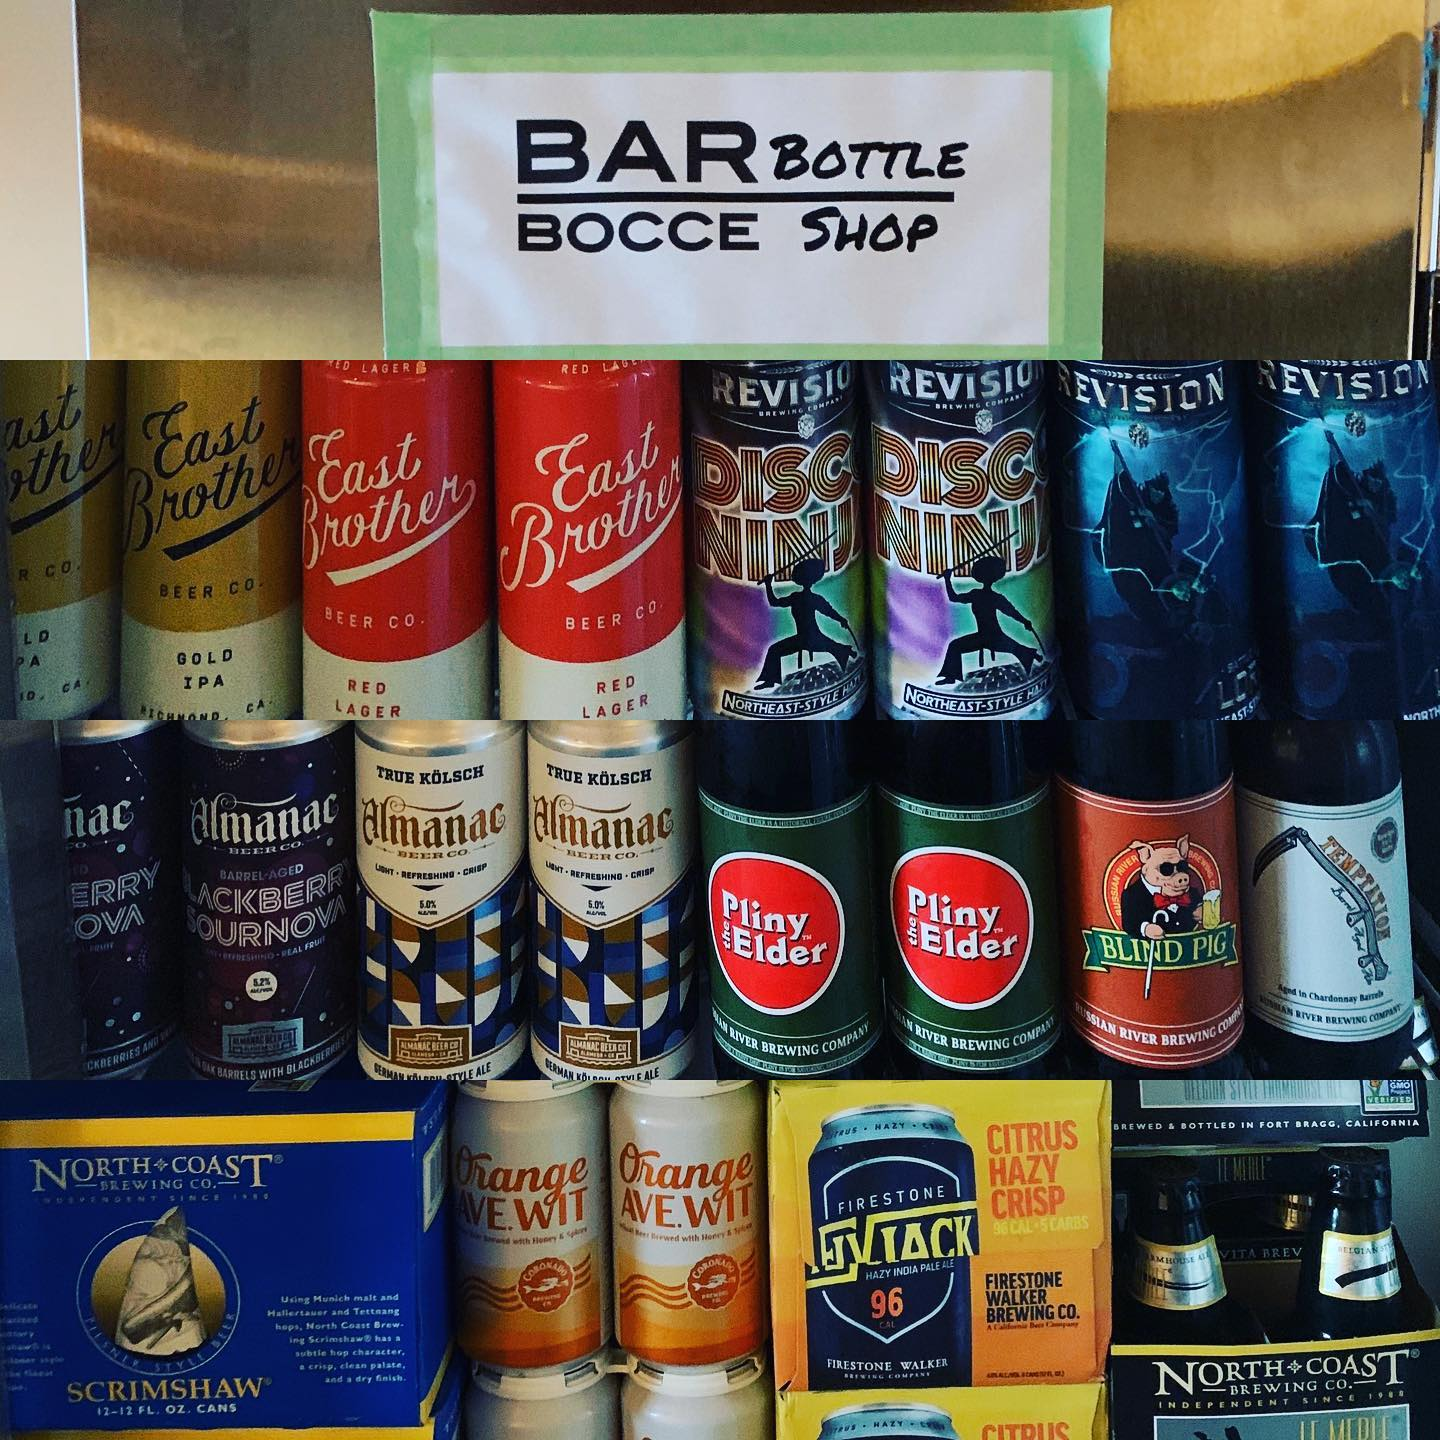 Bar bocce bottle shop